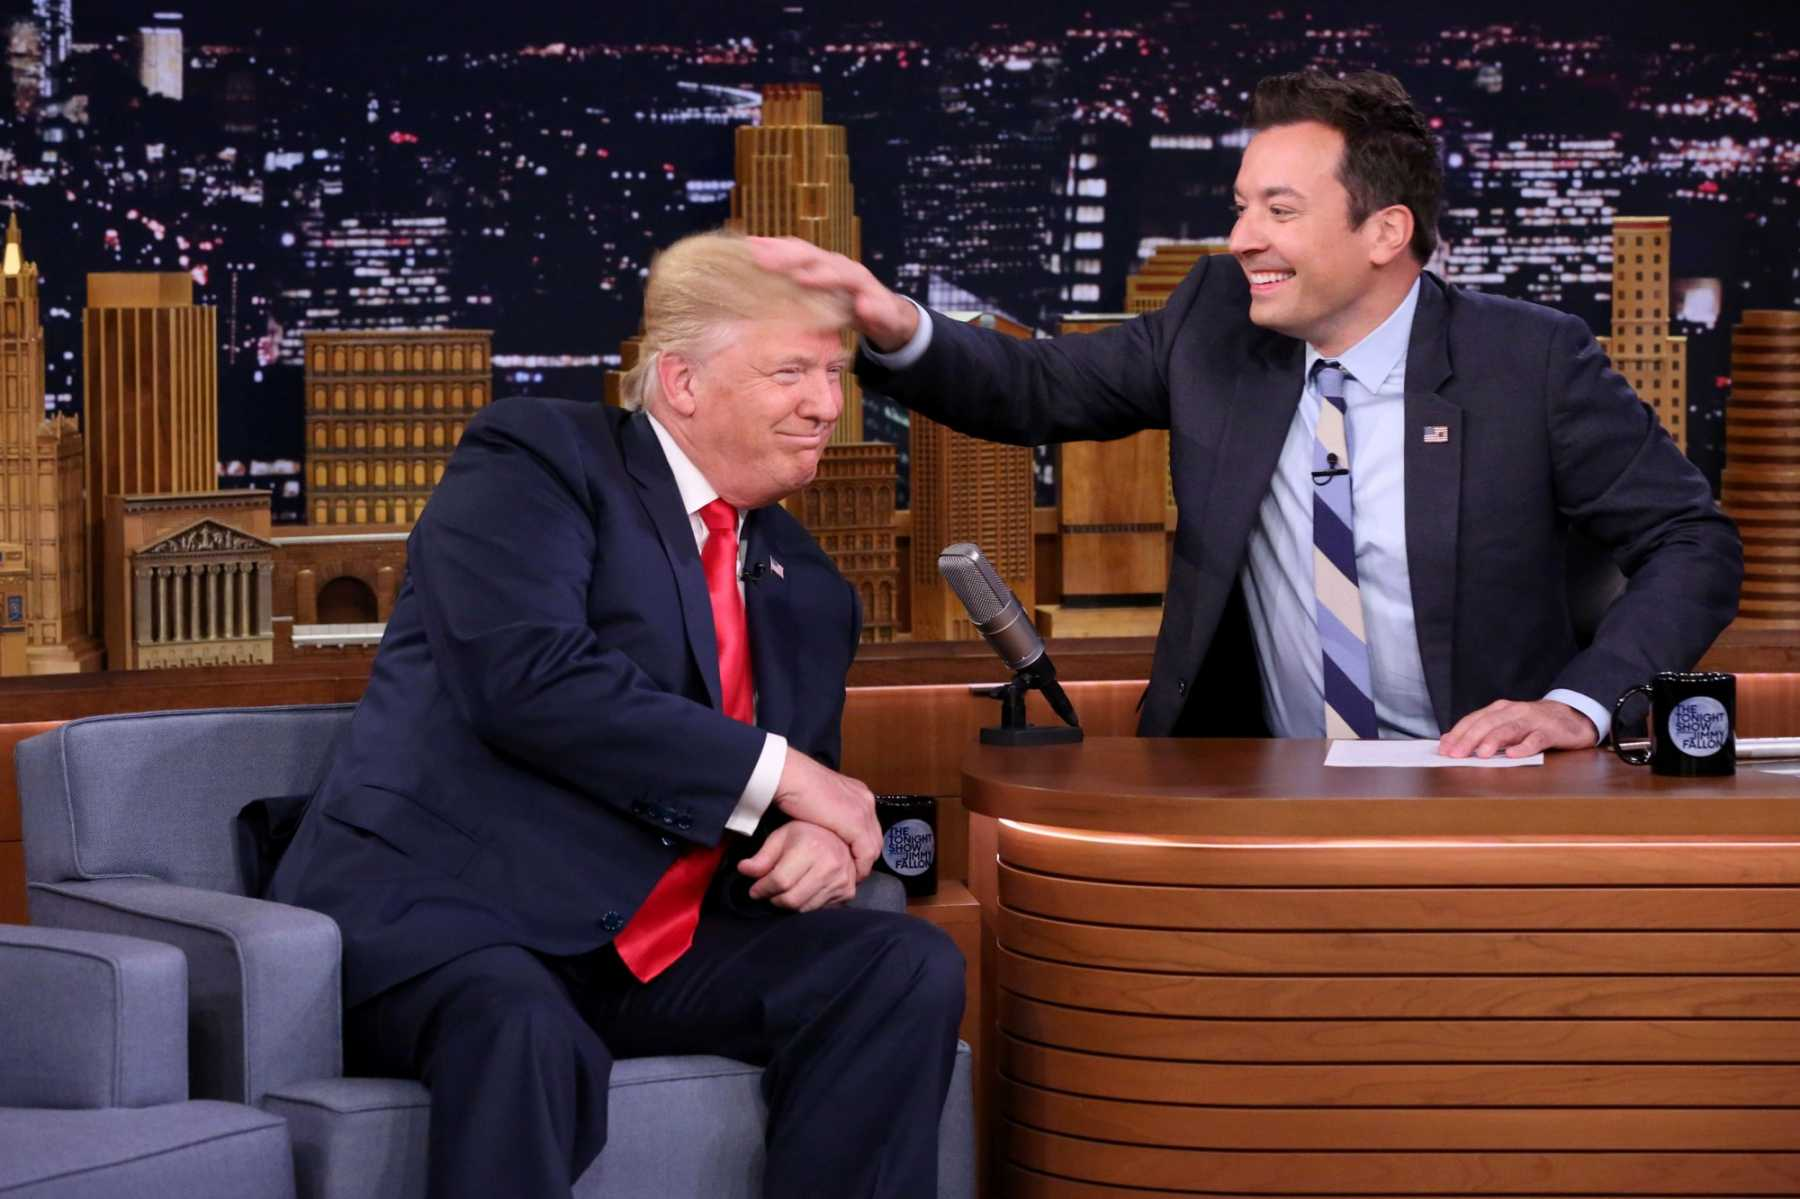 David Letterman Says Jimmy Fallon Should Have Done More In Trump Interview | letterman